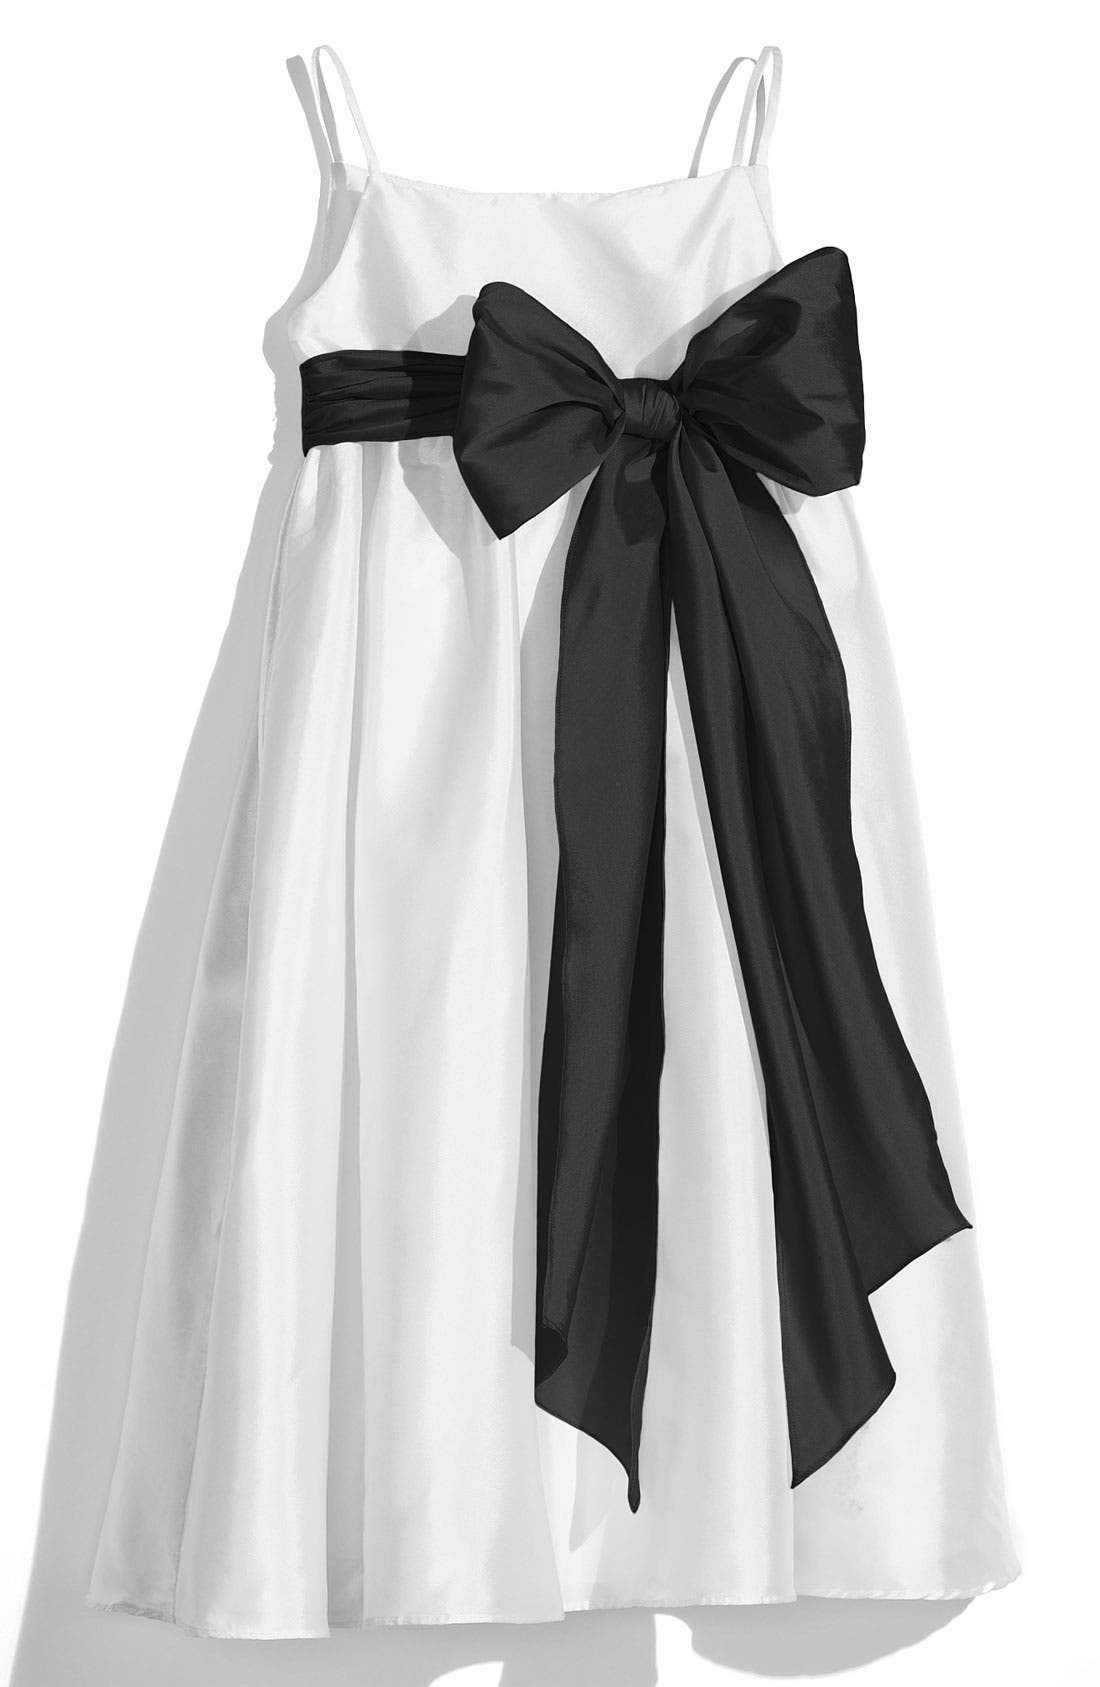 US ANGELS, White Sleeveless Empire Waist Taffeta Dress, Main thumbnail 1, color, 001